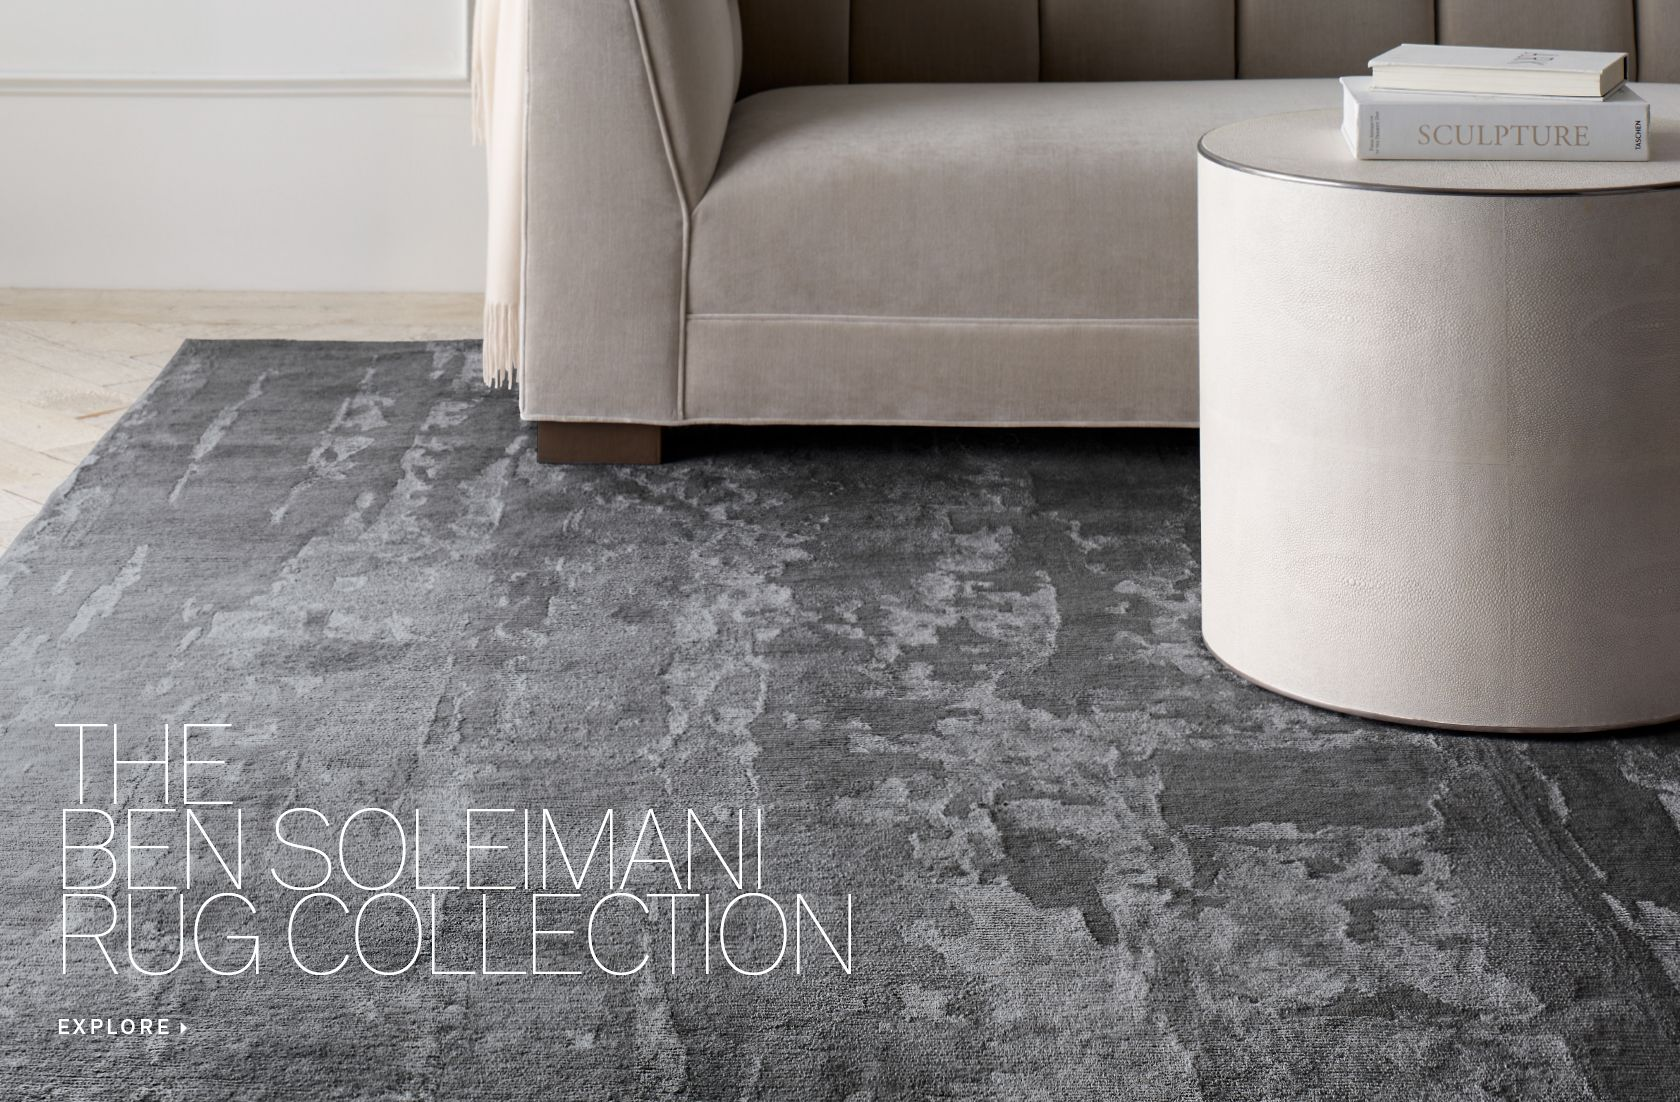 Explore the Ben Soleimani Rug Collection